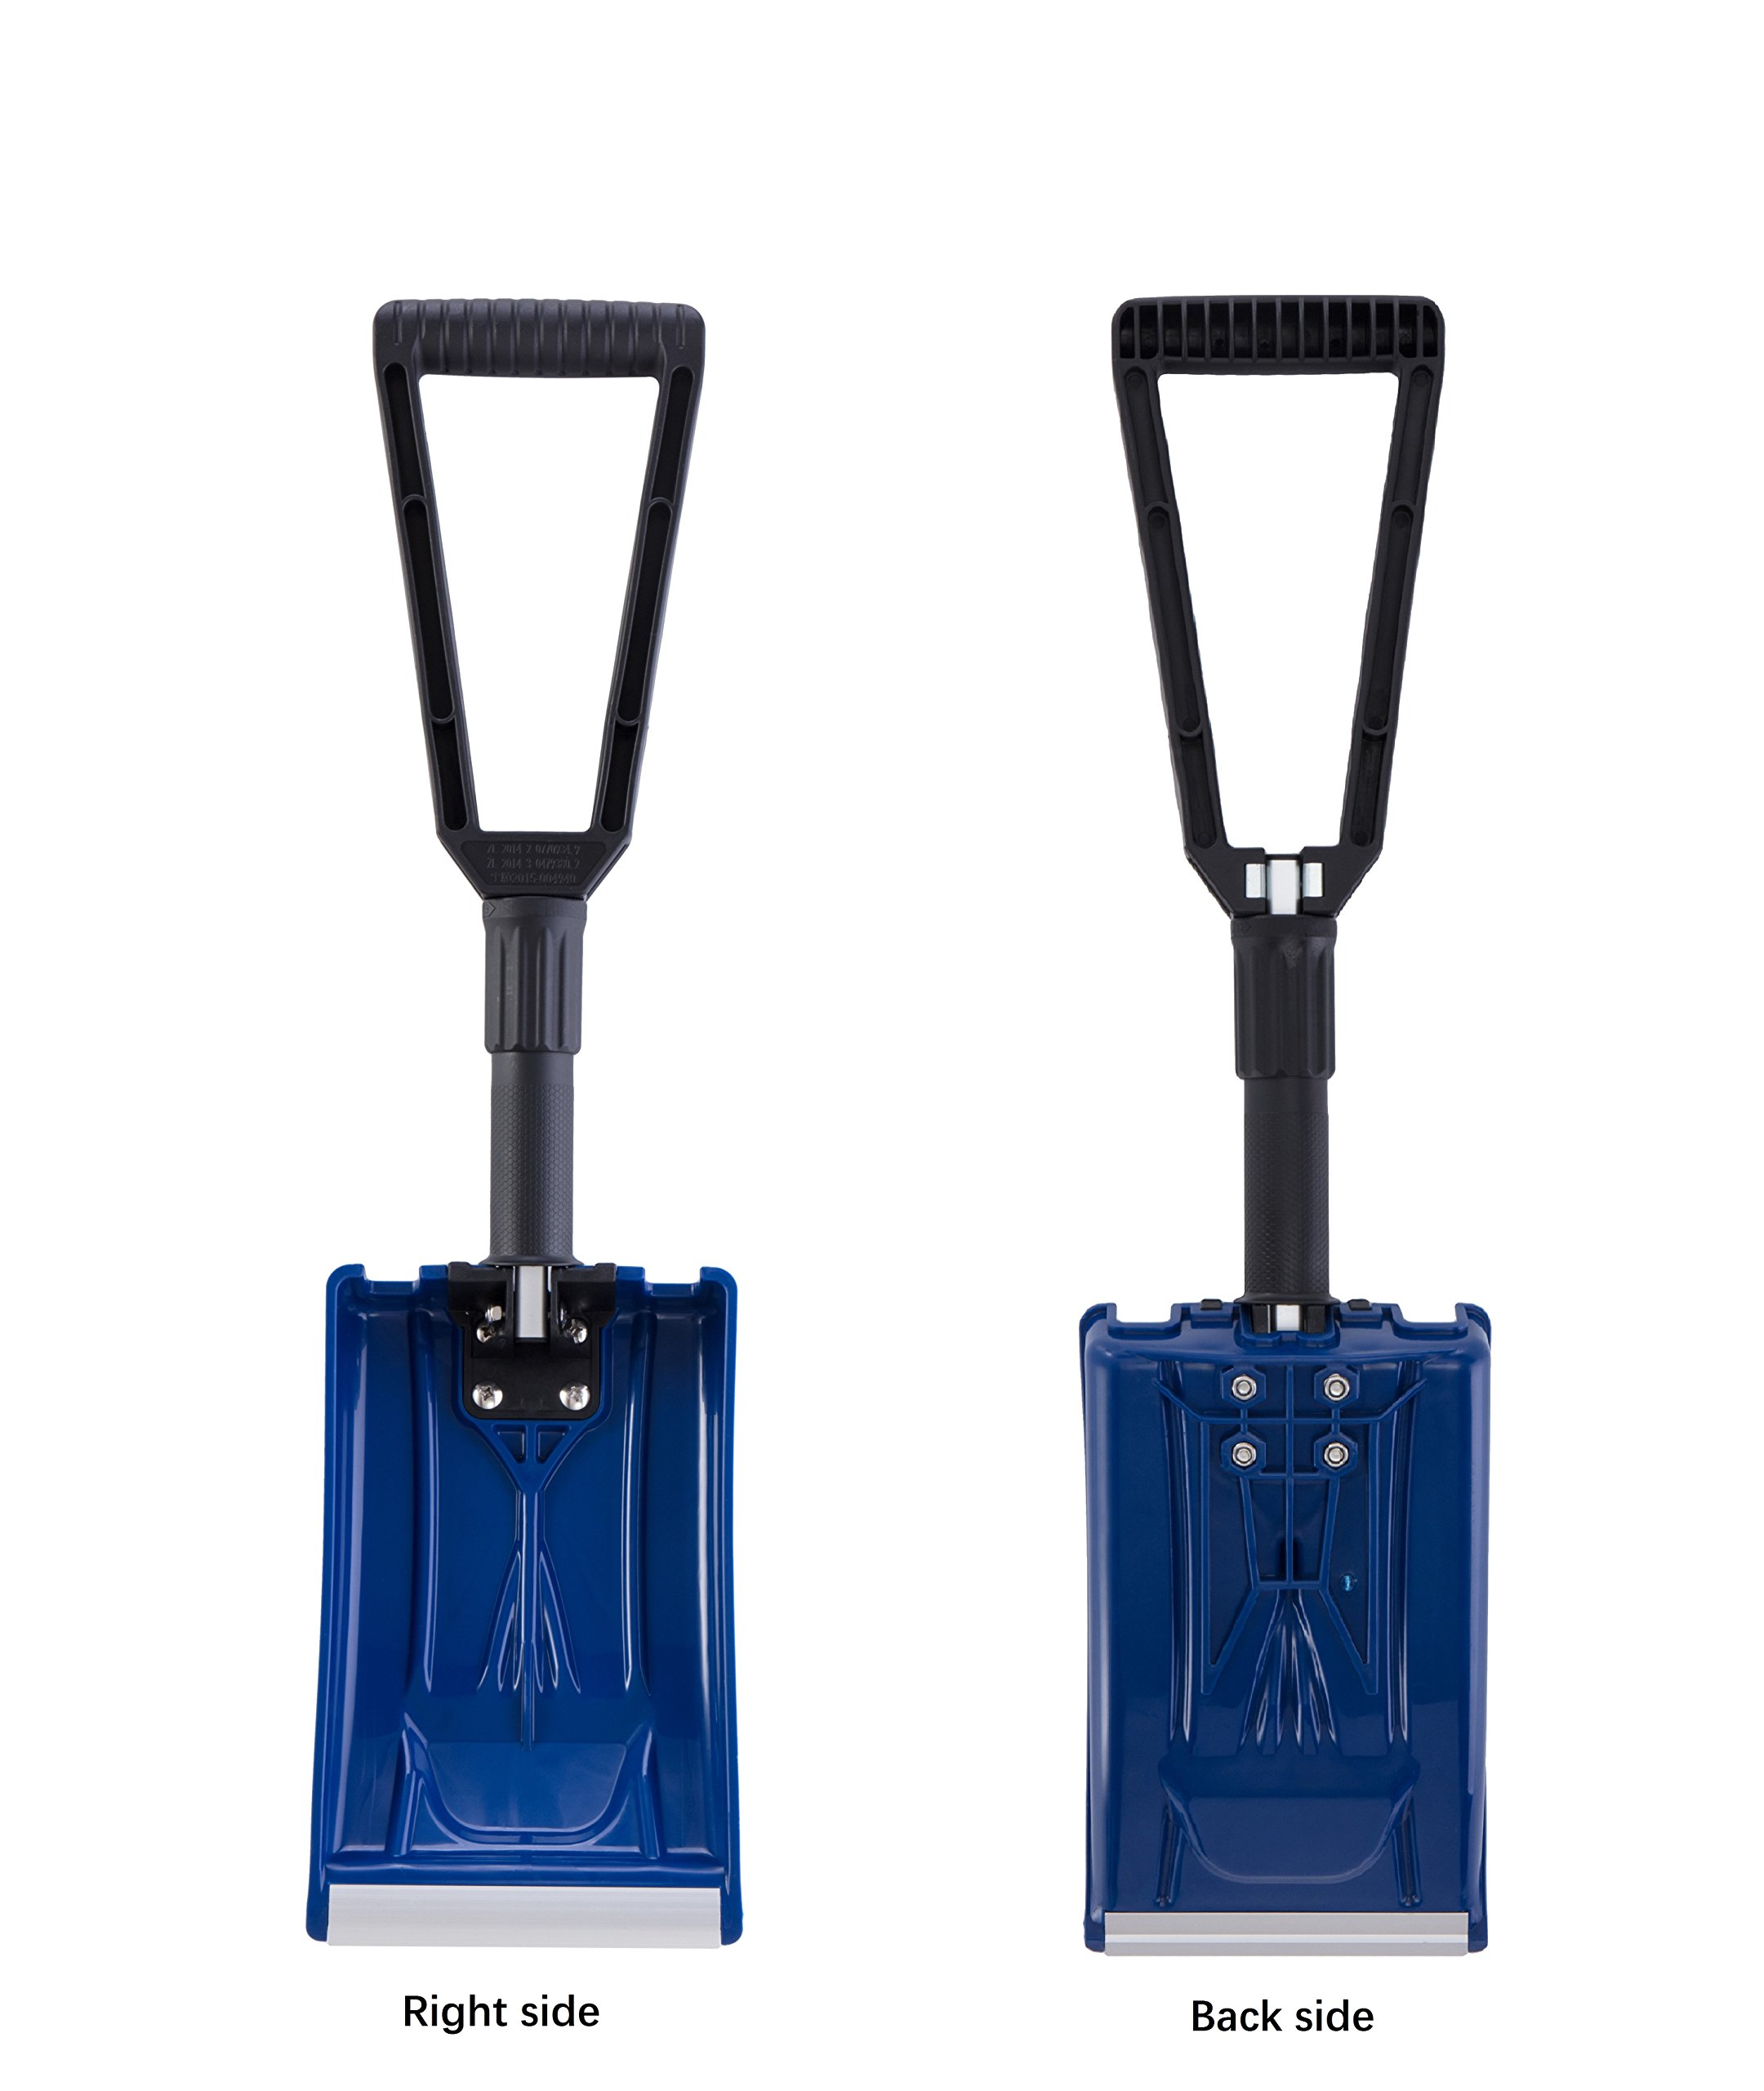 ORIENTOOLS Collapsible Folding Snow Shovel with Durable Aluminum Edge Blade (Blade 6'') by ORIENTOOLS (Image #5)